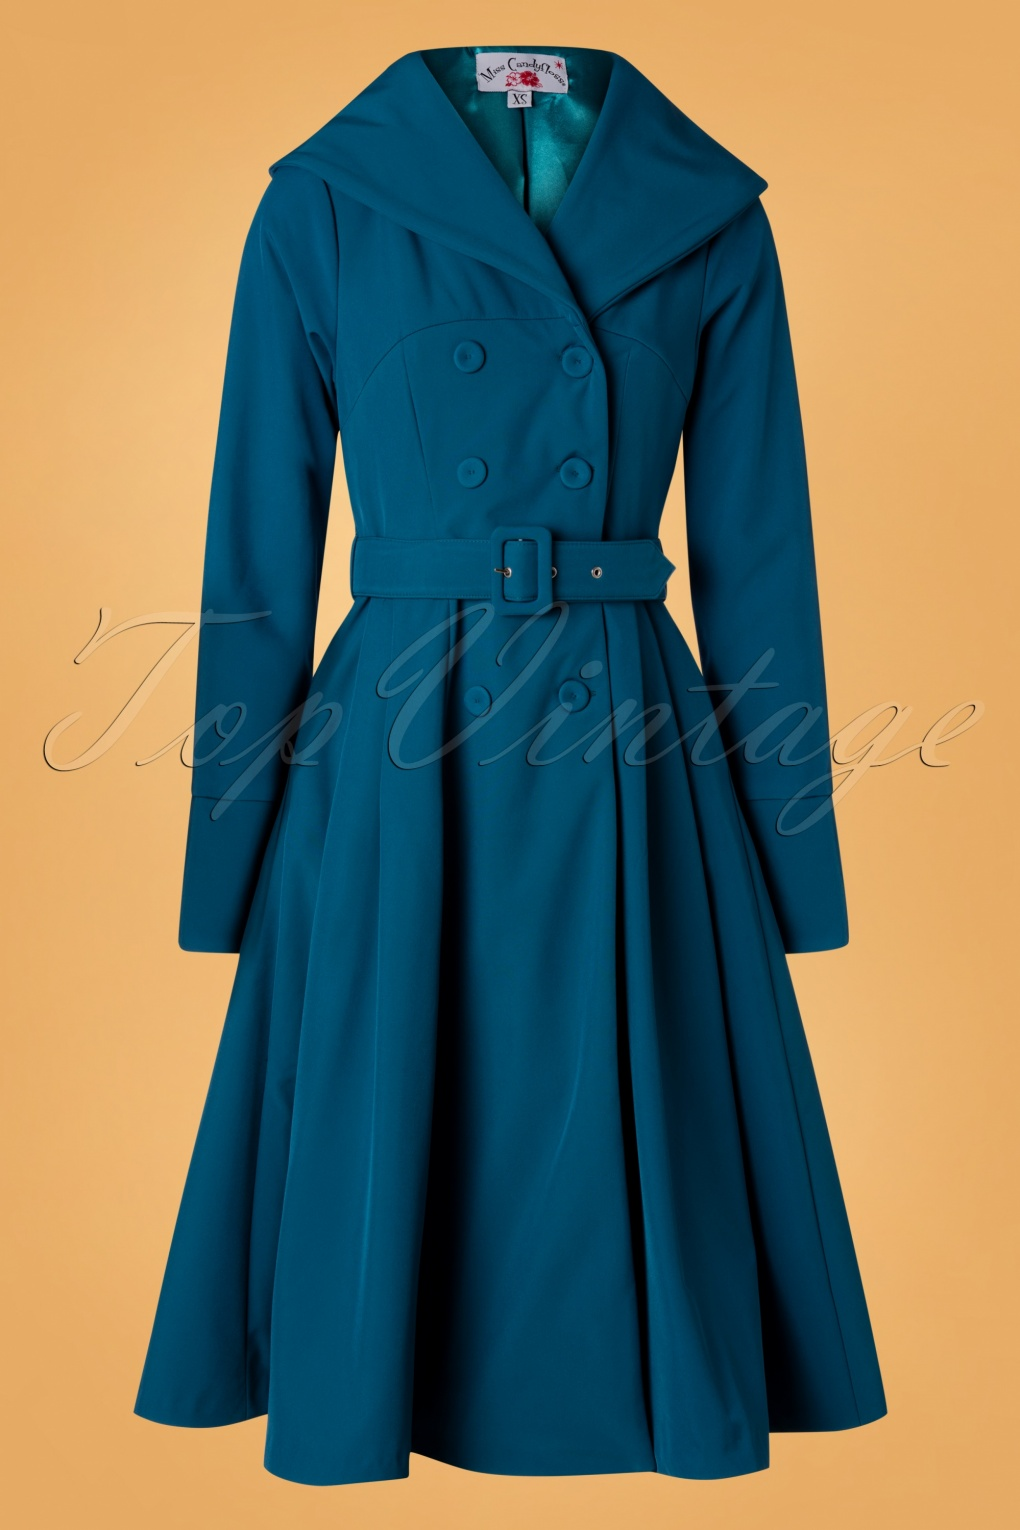 1950s Jackets, Coats, Bolero | Swing, Pin Up, Rockabilly 50s Myriam Kat Water Resistant Trench Coat in Teal £155.78 AT vintagedancer.com